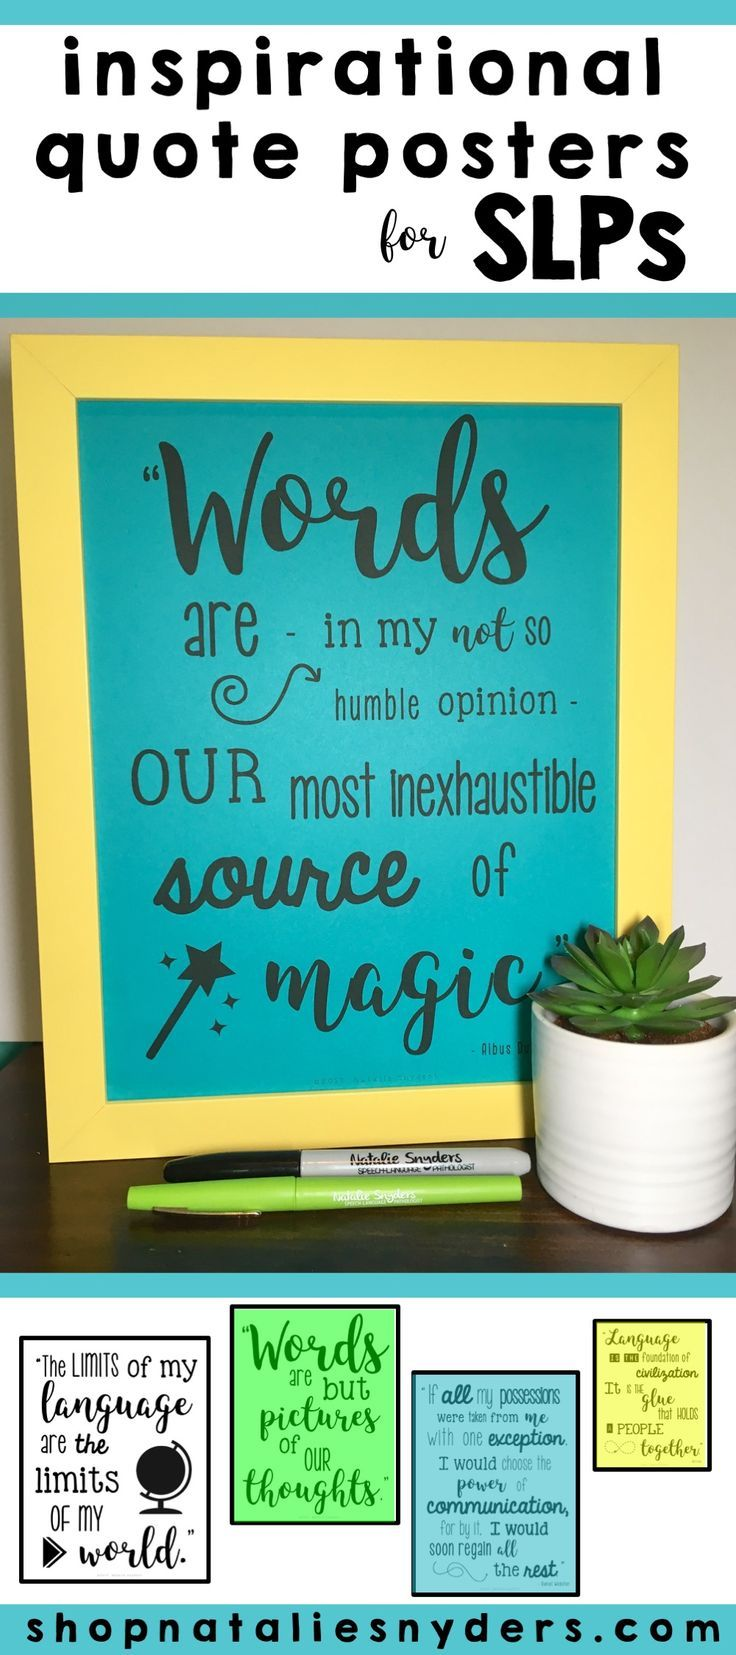 Set of 10 adorable inspirational quote posters for SLPs!